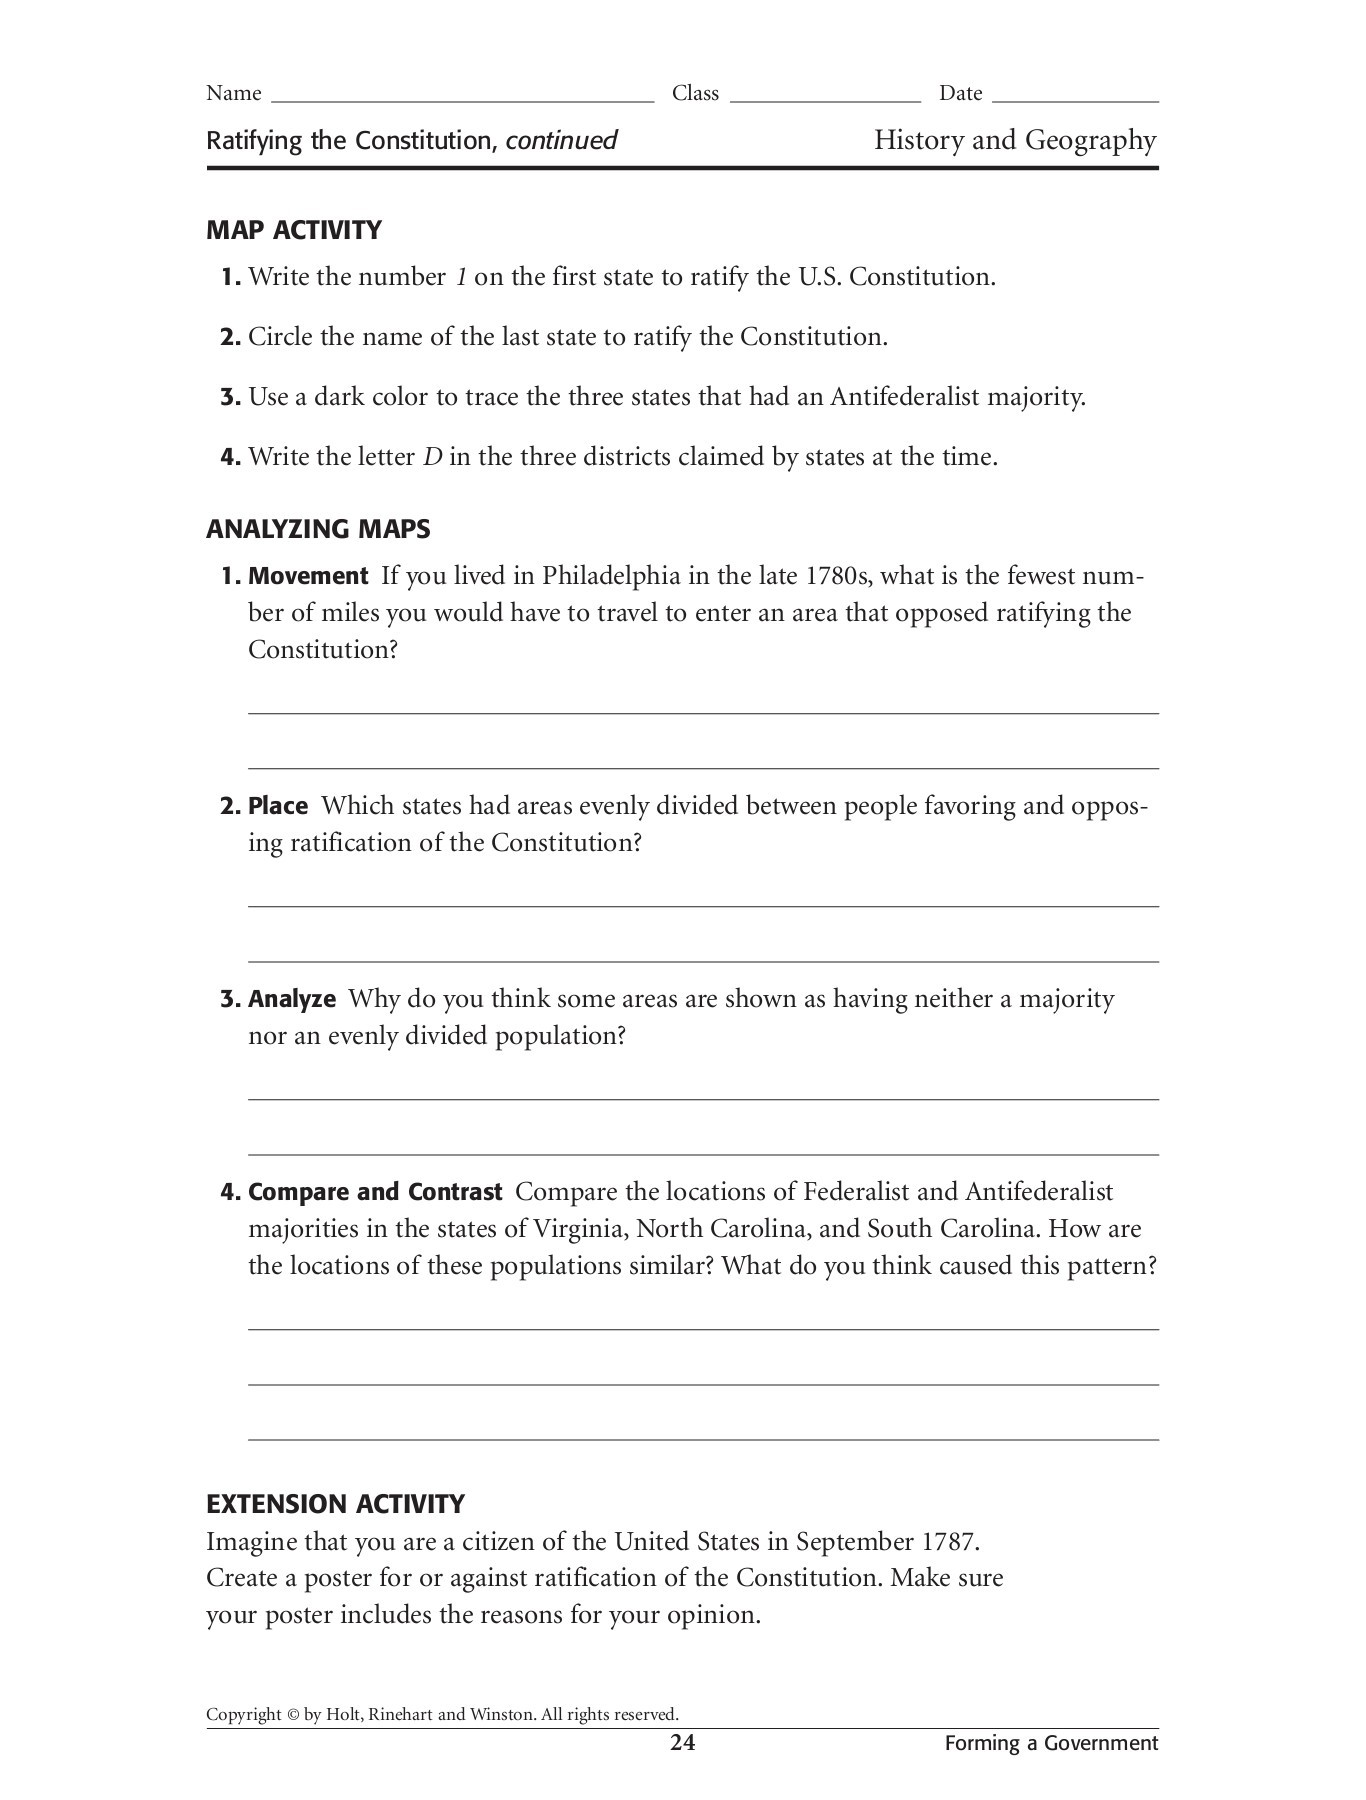 Ratifying The Constitution Worksheet Answers